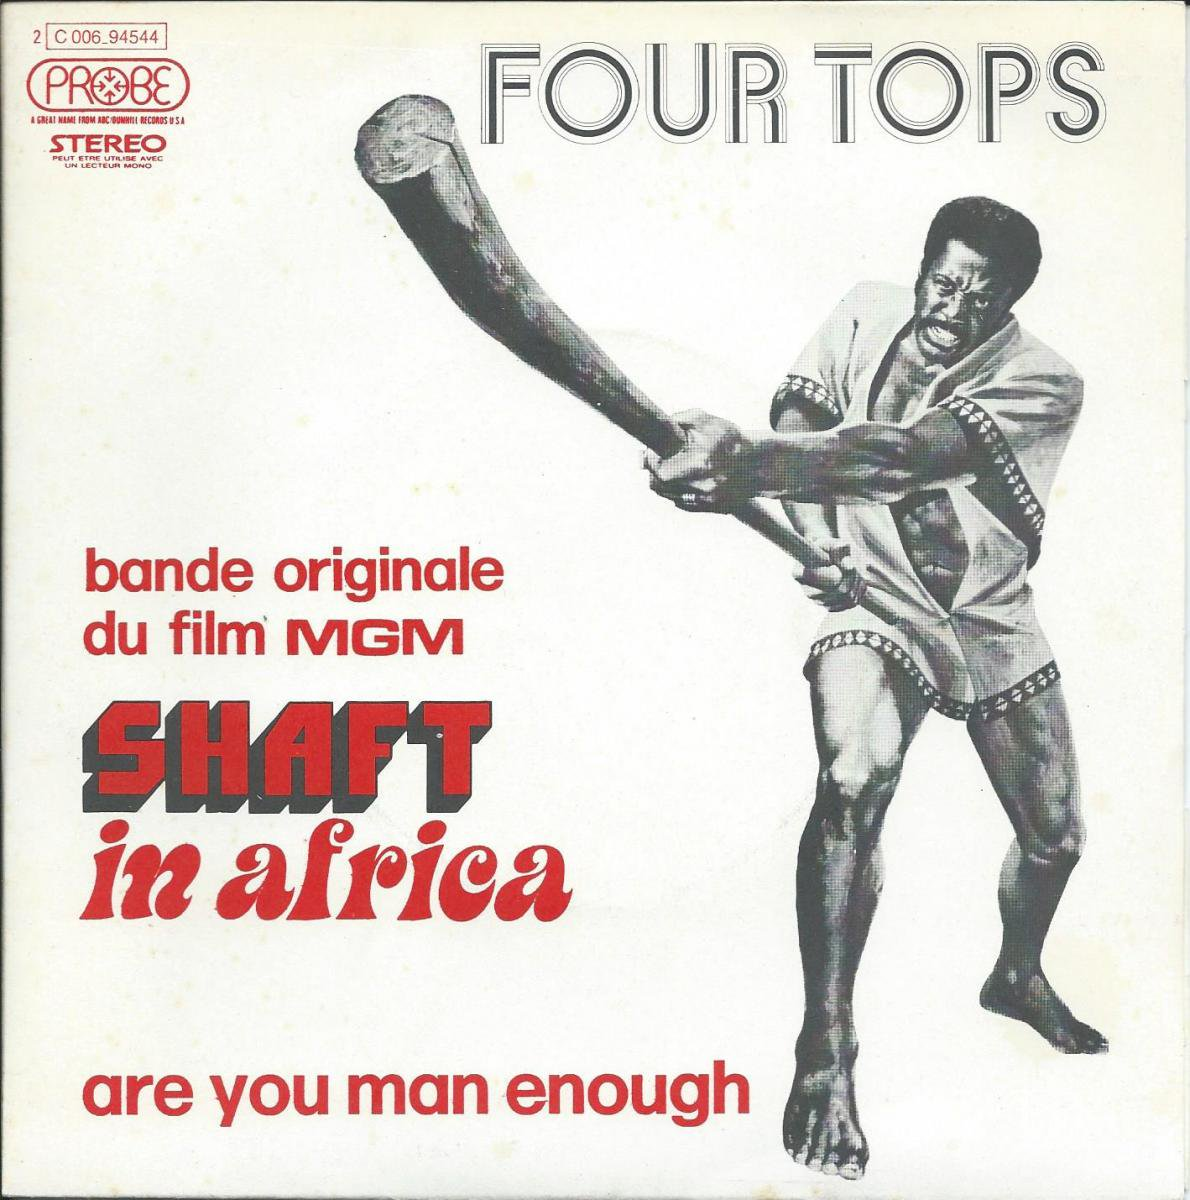 FOUR TOPS / ARE YOU MAN ENOUGH / PEACE OF MIND (BANDE ORIGINAL DU FILM SHAFT IN AFRICA) (7